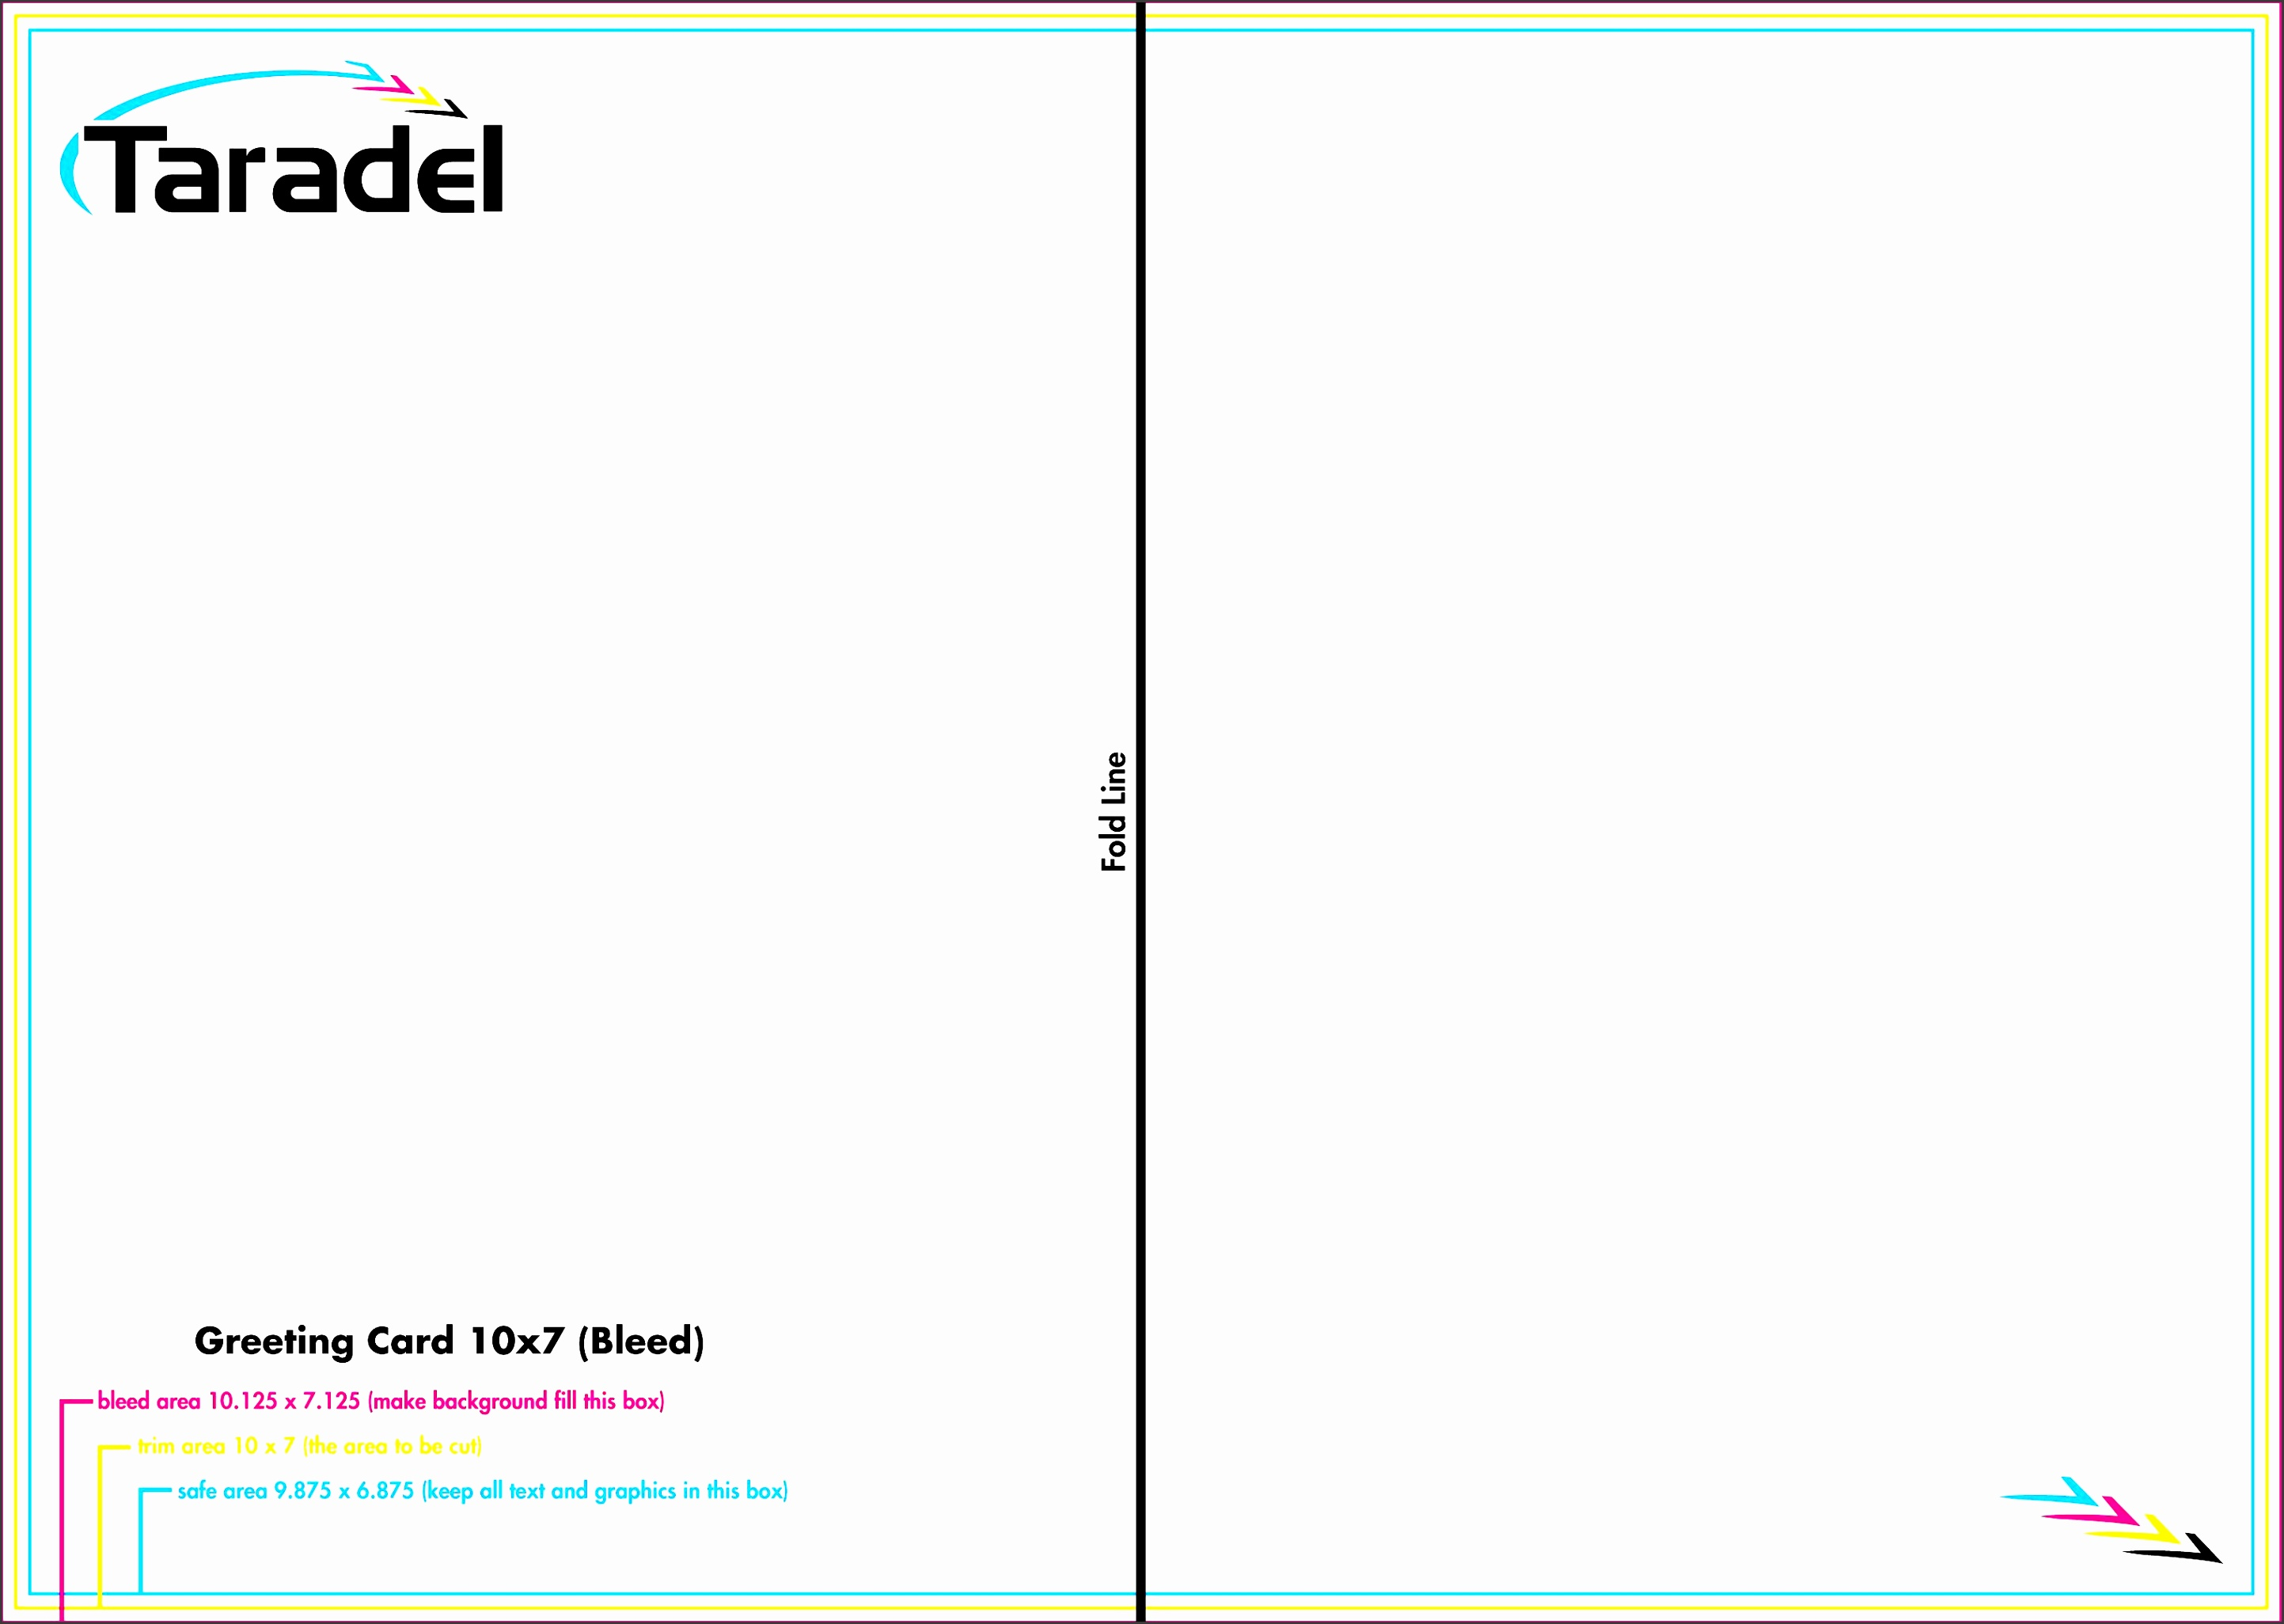 Full Bleedsiness Card Template Cards Greeting Free Blank Greetings Illustrator Indesign Fearsome Bleed Business 10